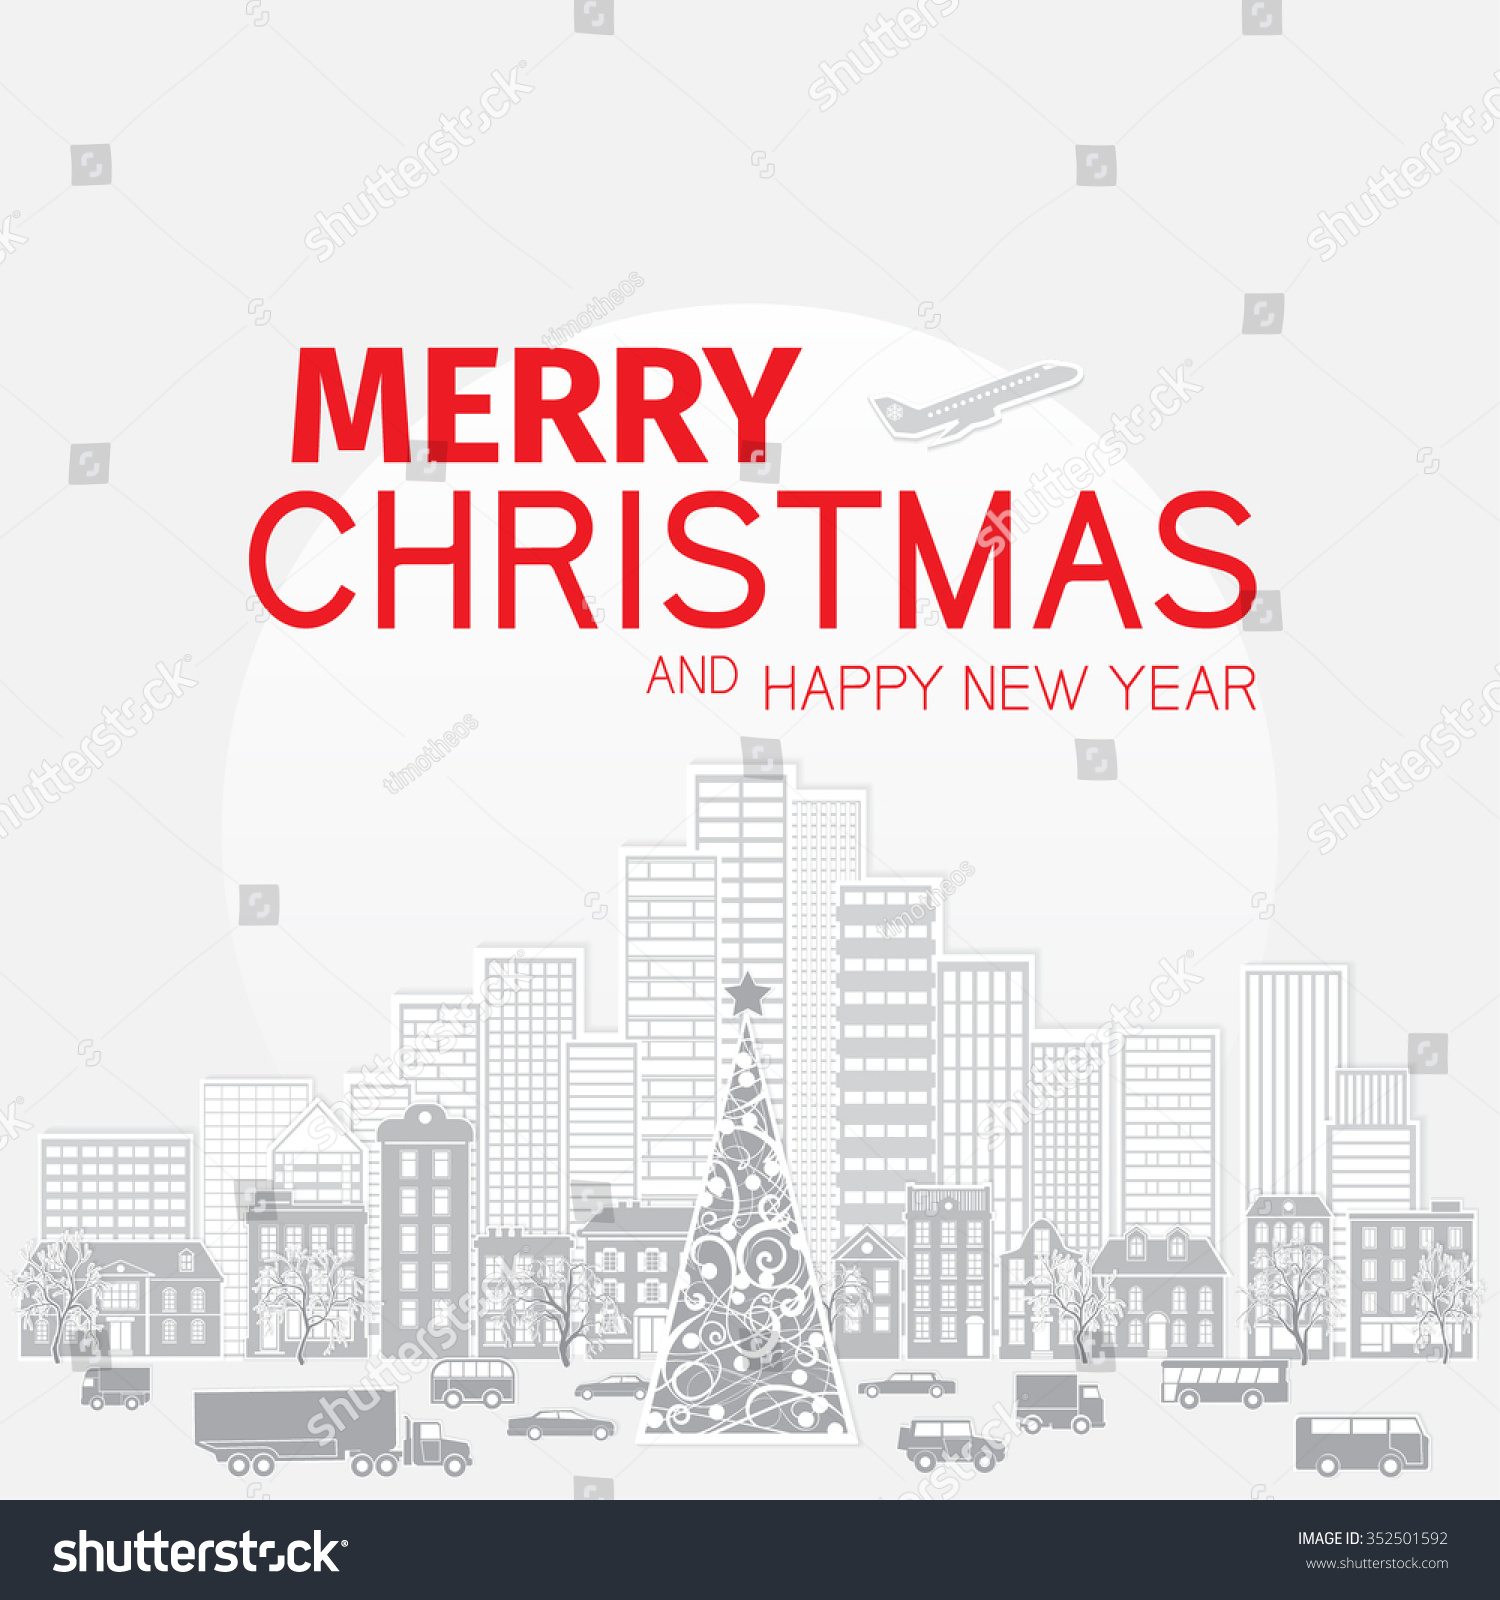 Merry christmas happy new year greetings stock vector 352501592 merry christmas and happy new year greetings card with red letters on light gray background with m4hsunfo